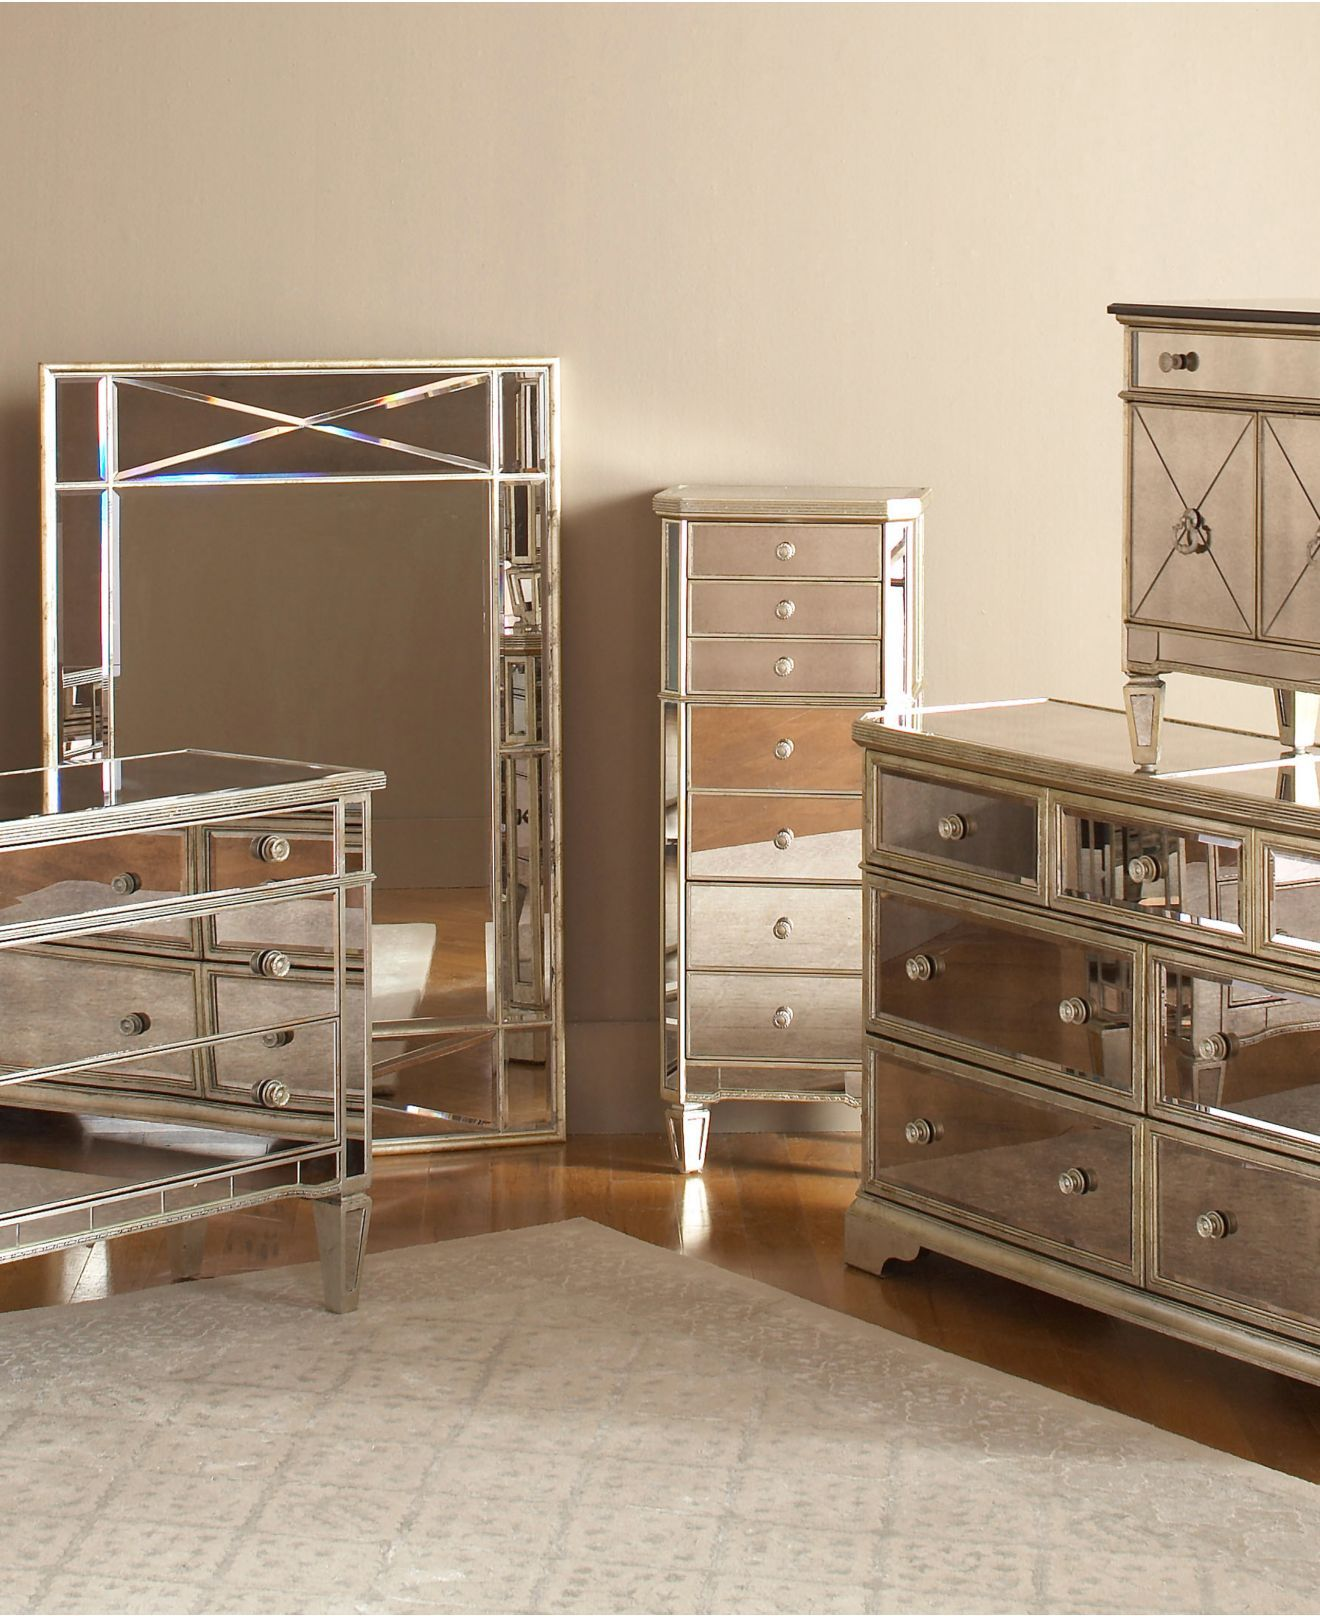 Marais Mirrored Furniture Collection In 2019 Reflections